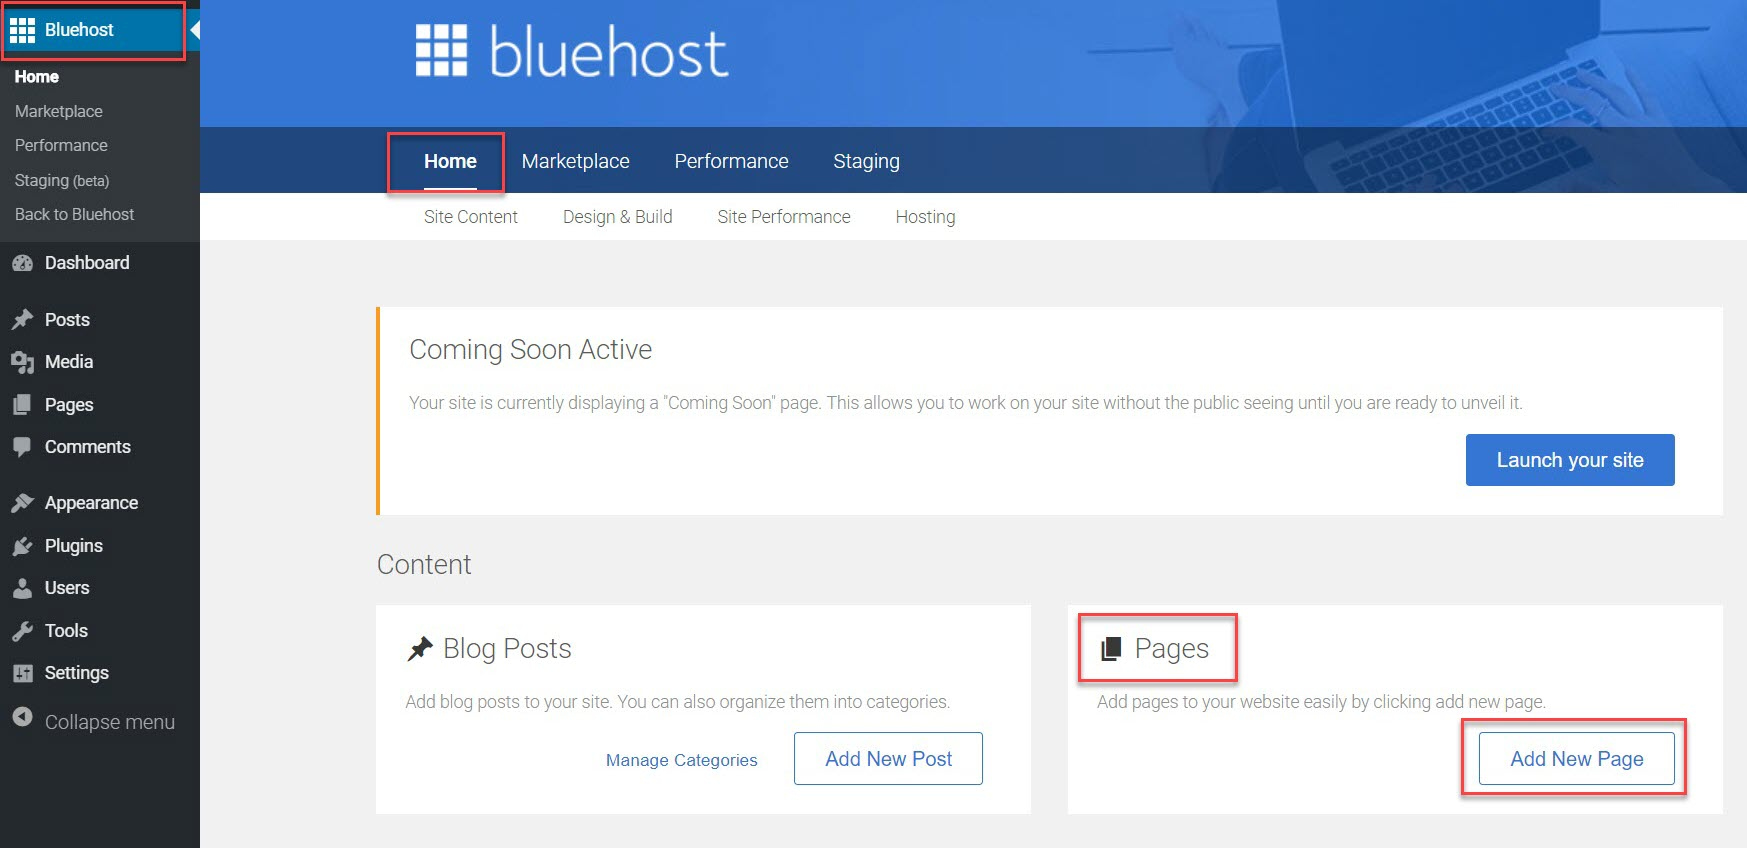 How To Install Wordpress On Bluehost March 2021